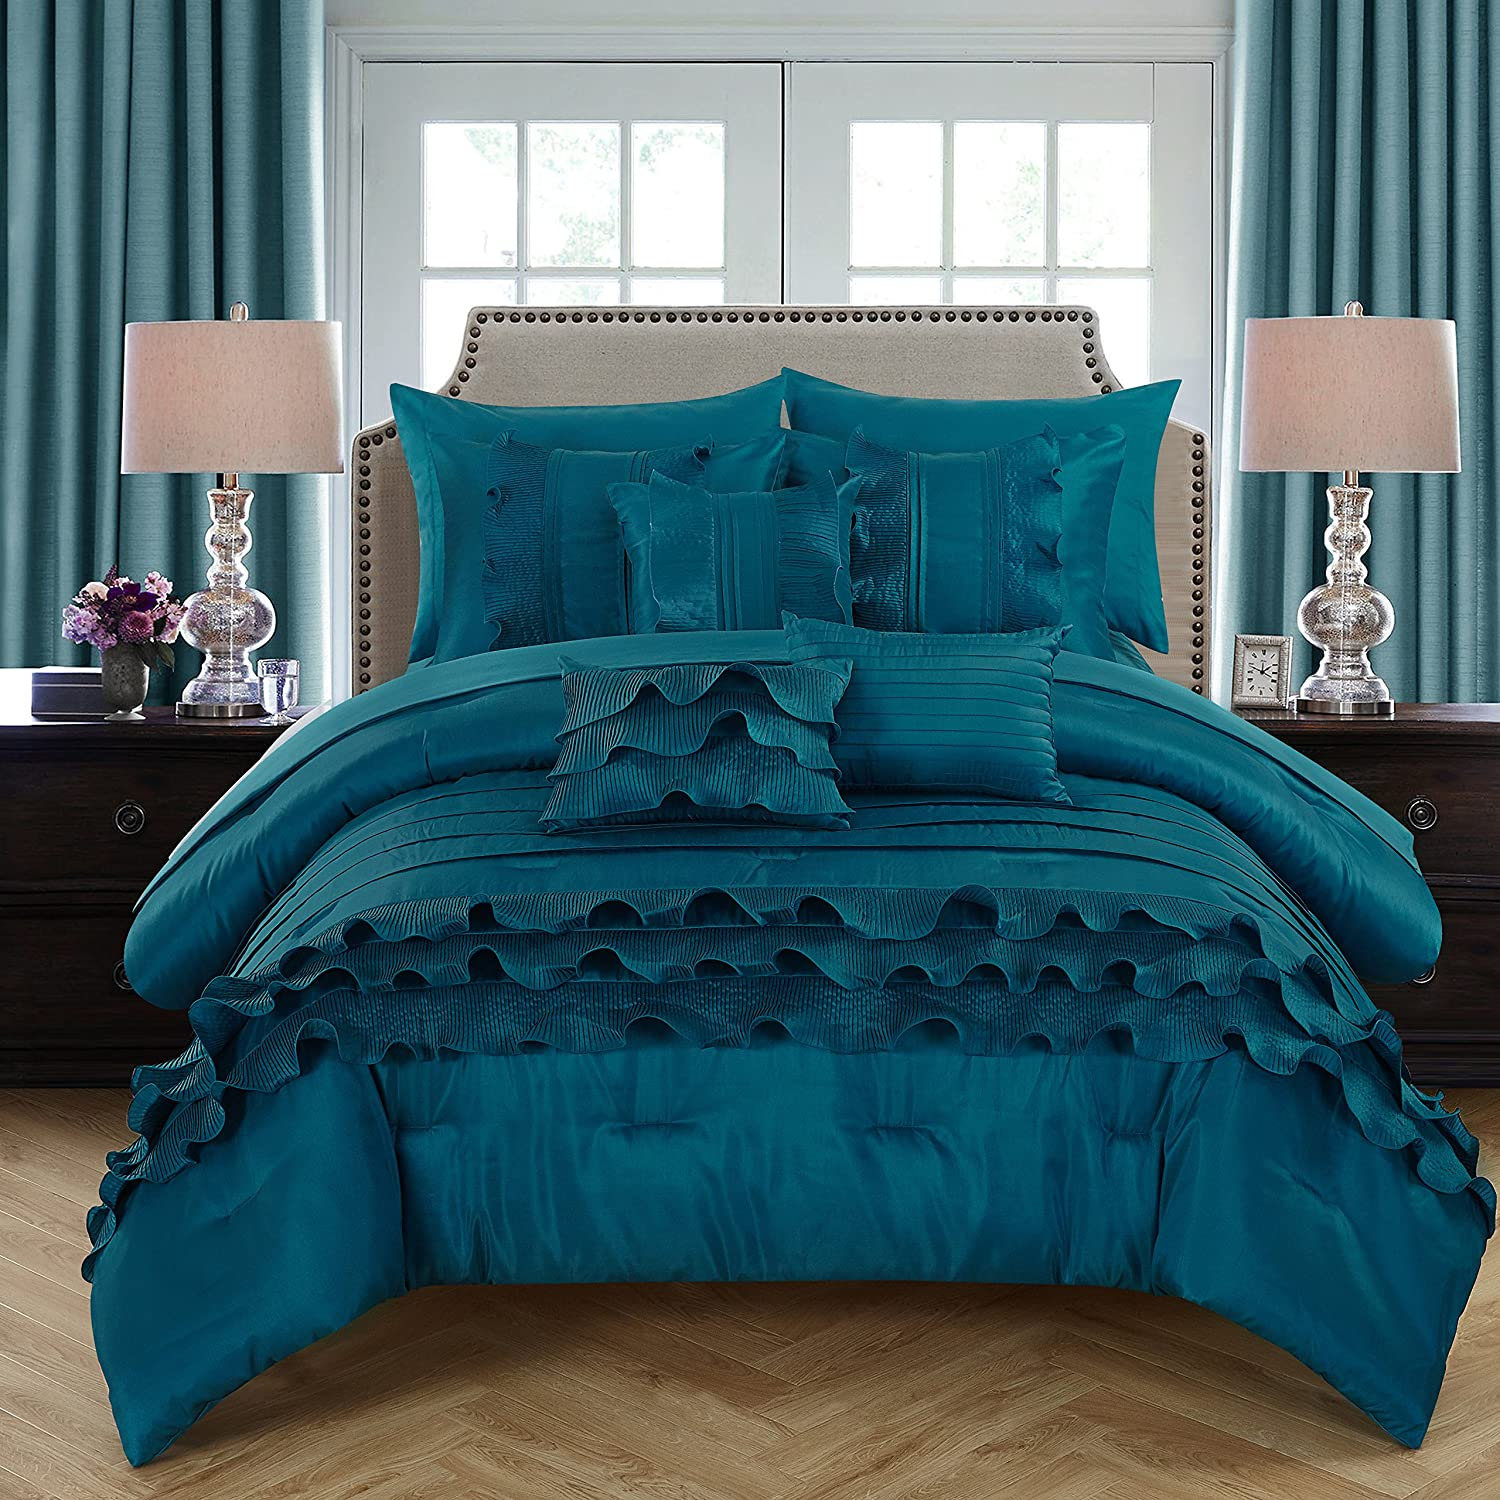 Cheap teal bedding sets with more ease bedding with style for Super cheap bedroom sets